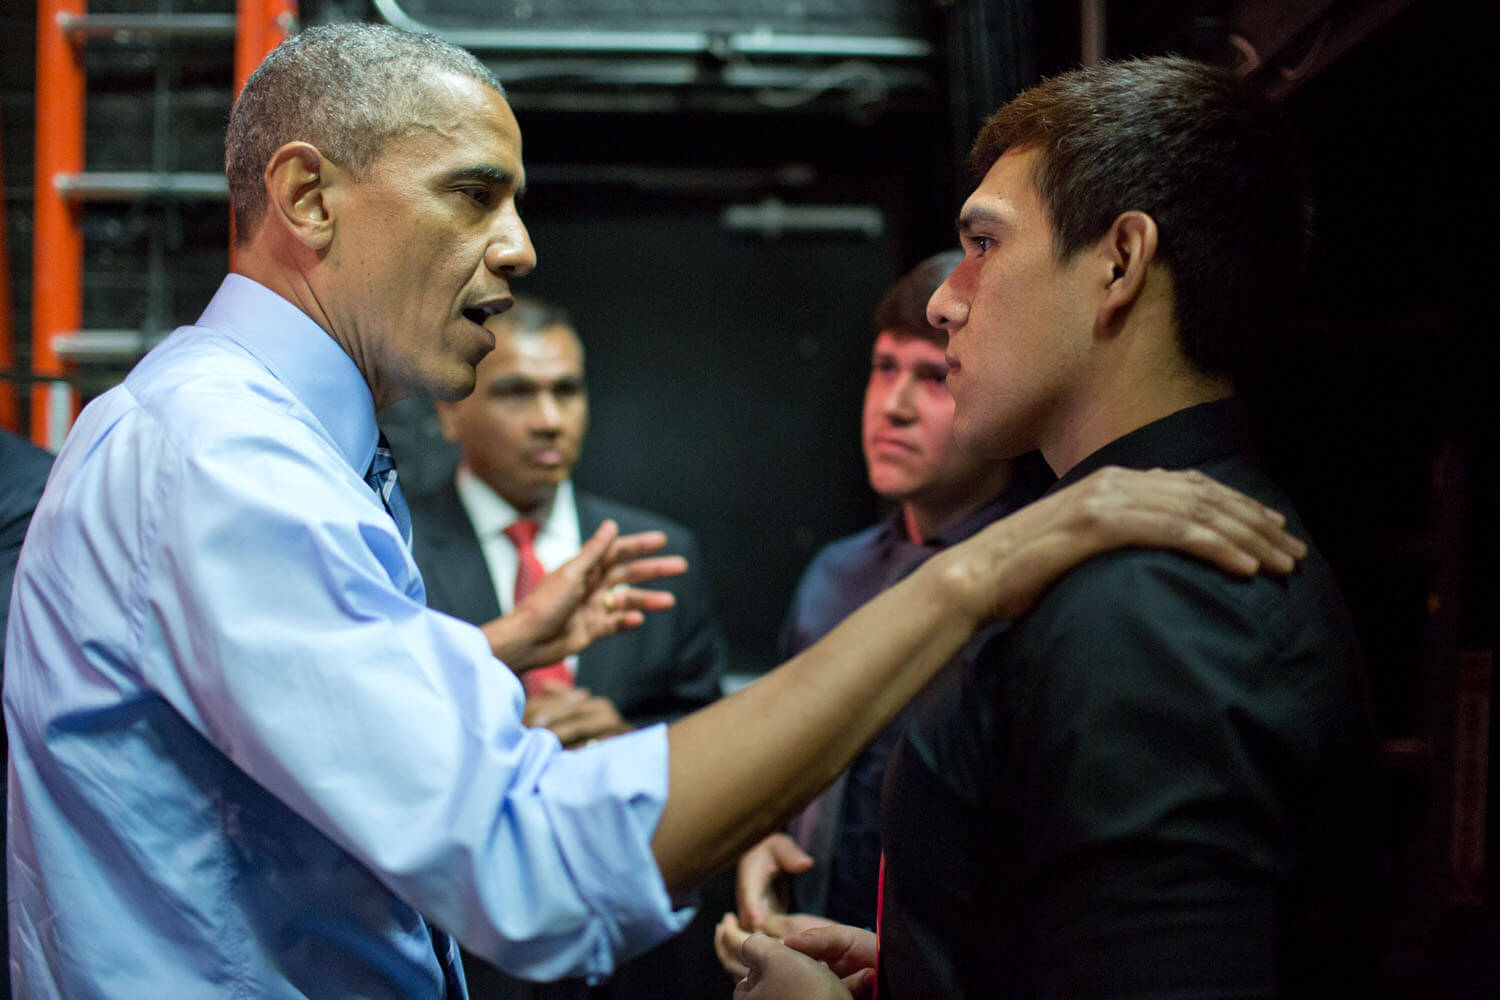 Obama will again sideline immigration during State of the Union, experts say